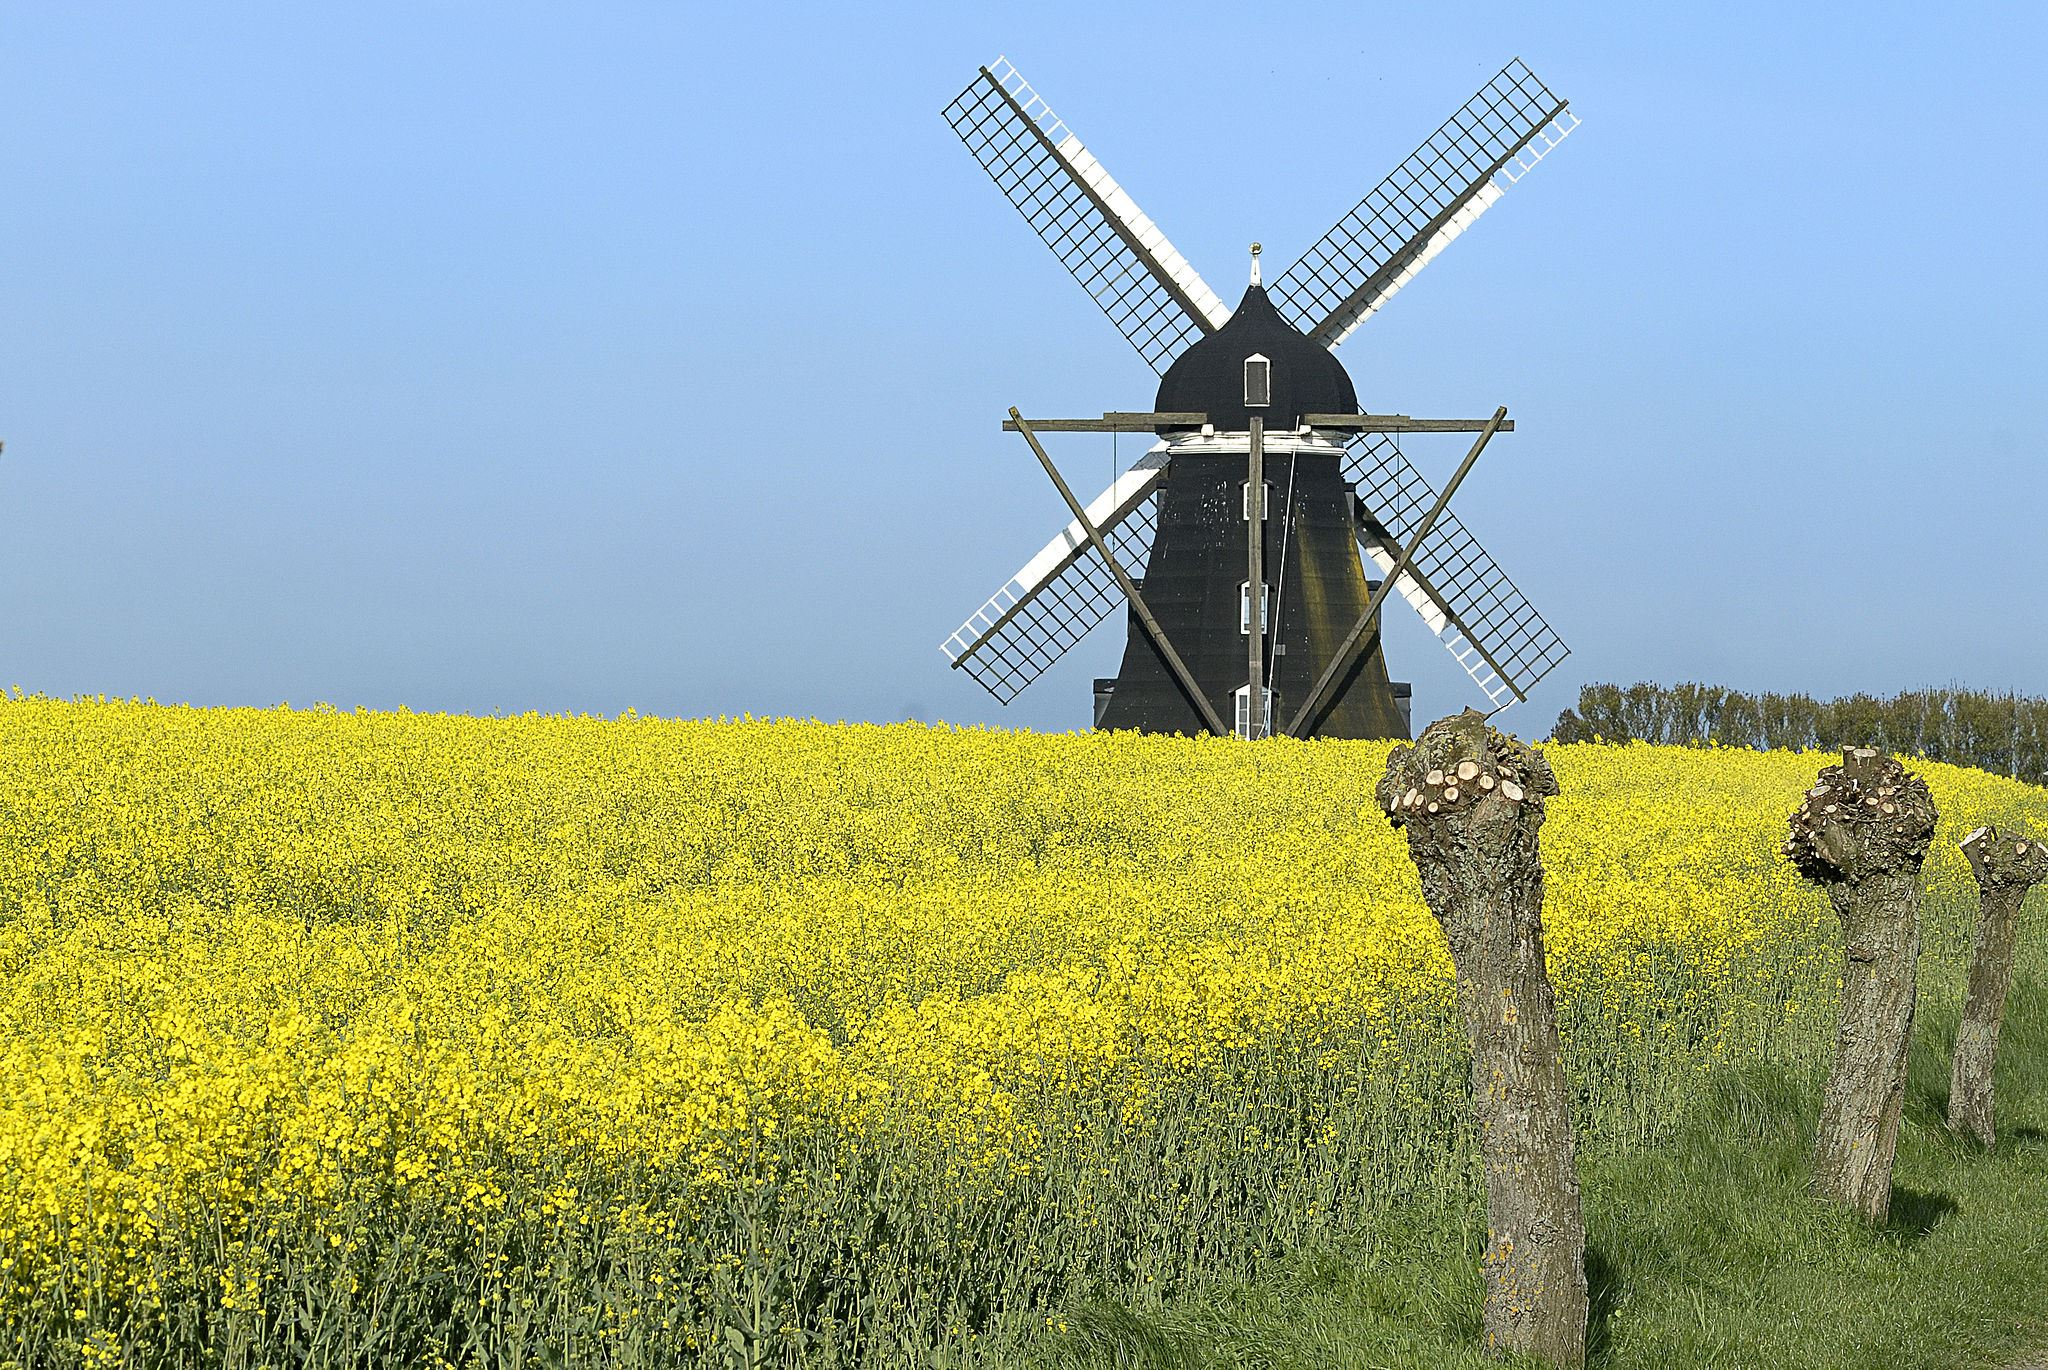 Rolf Hellman,  © [CC BY-SA 3.0 (http://creativecommons.org/licenses/by-sa/3.0)], via Wikimedia Commons, Wind mill day